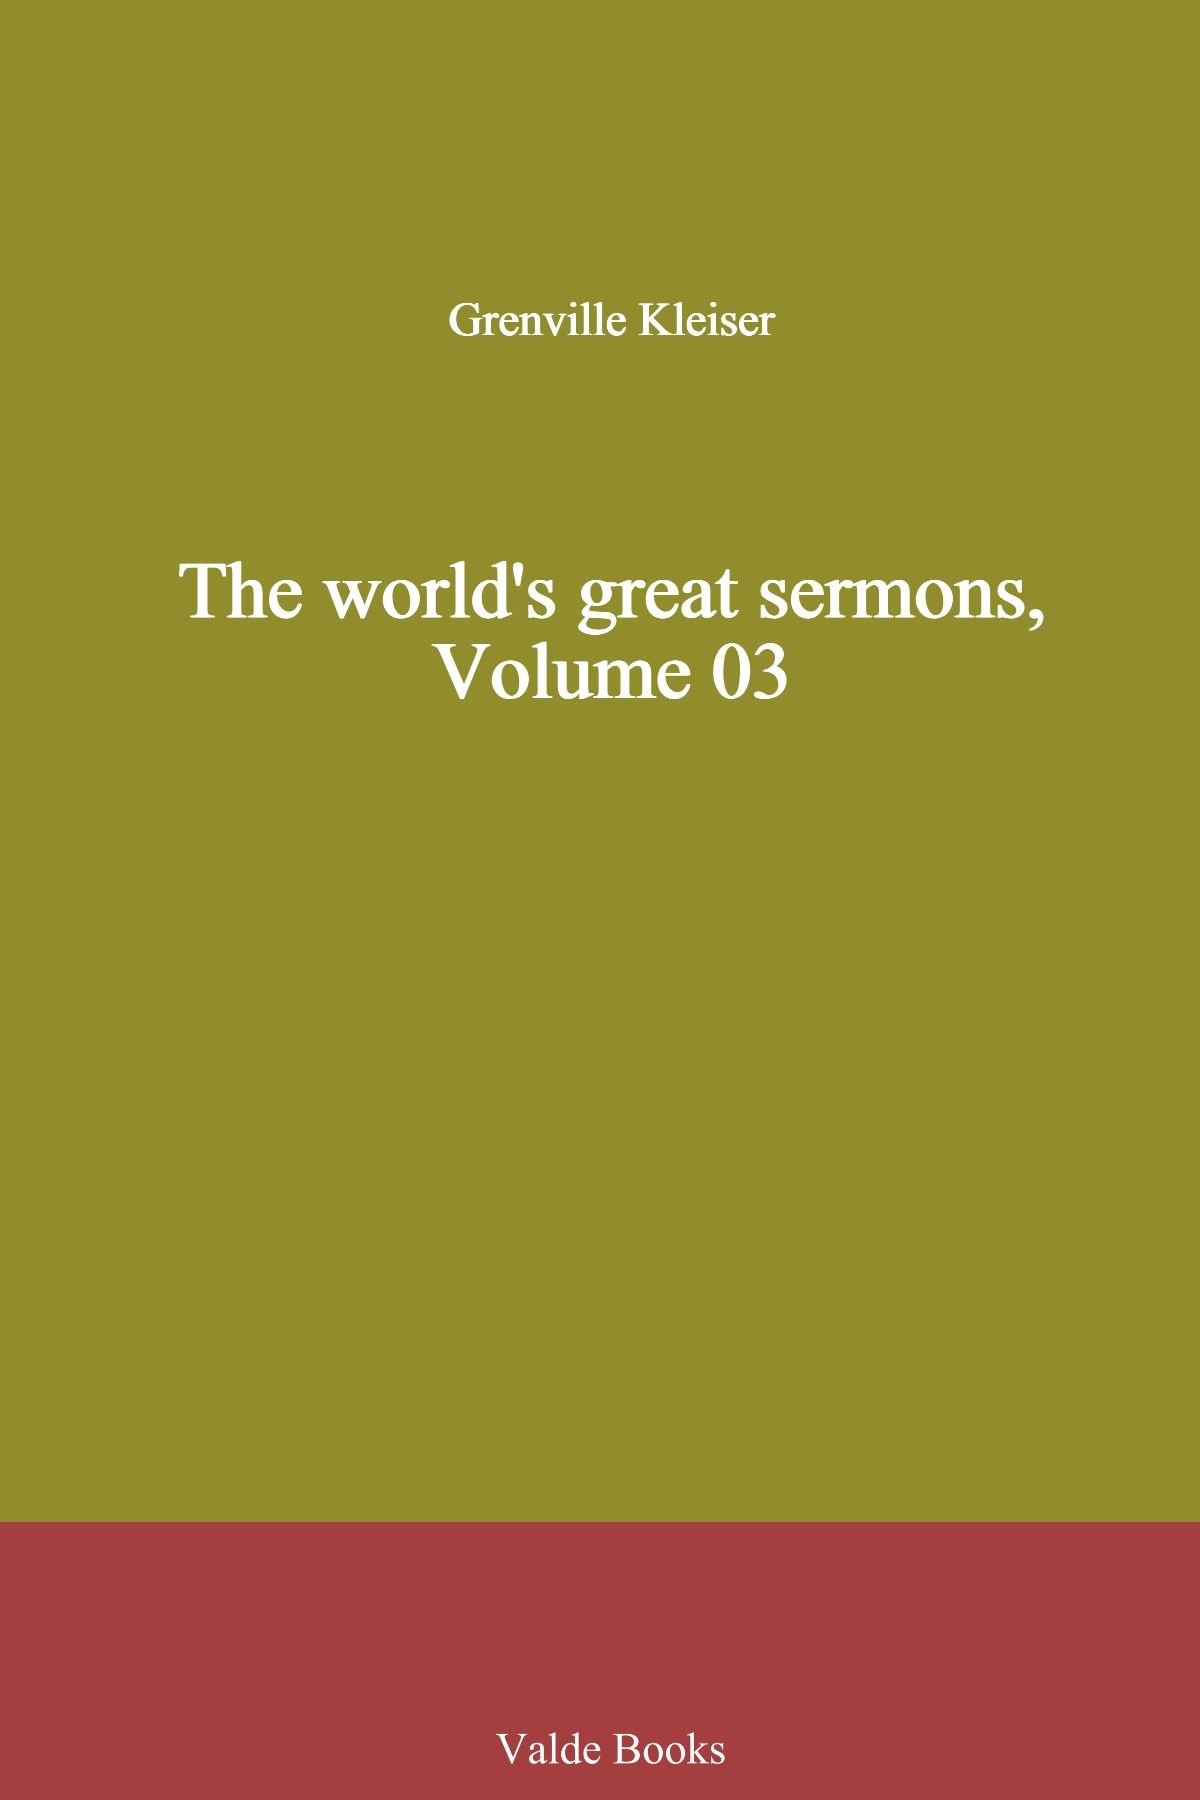 The world's great sermons, Volume 03 PDF